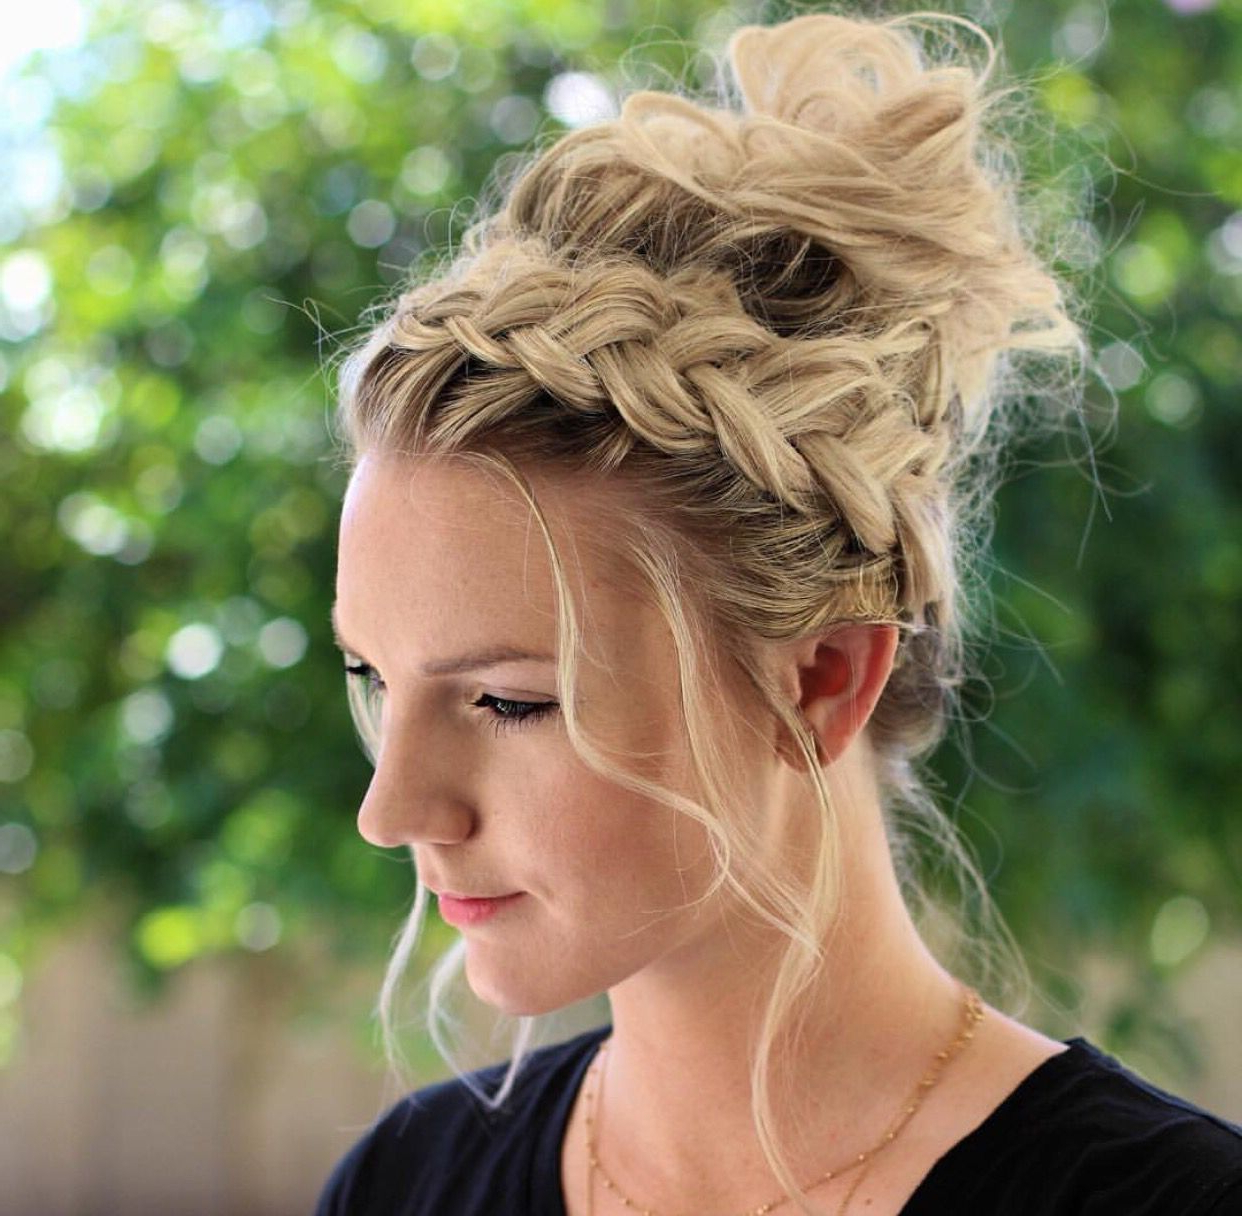 Braided Hairstyles Updo Regarding Well Known Messy Crown Braid Hairstyles (View 6 of 20)